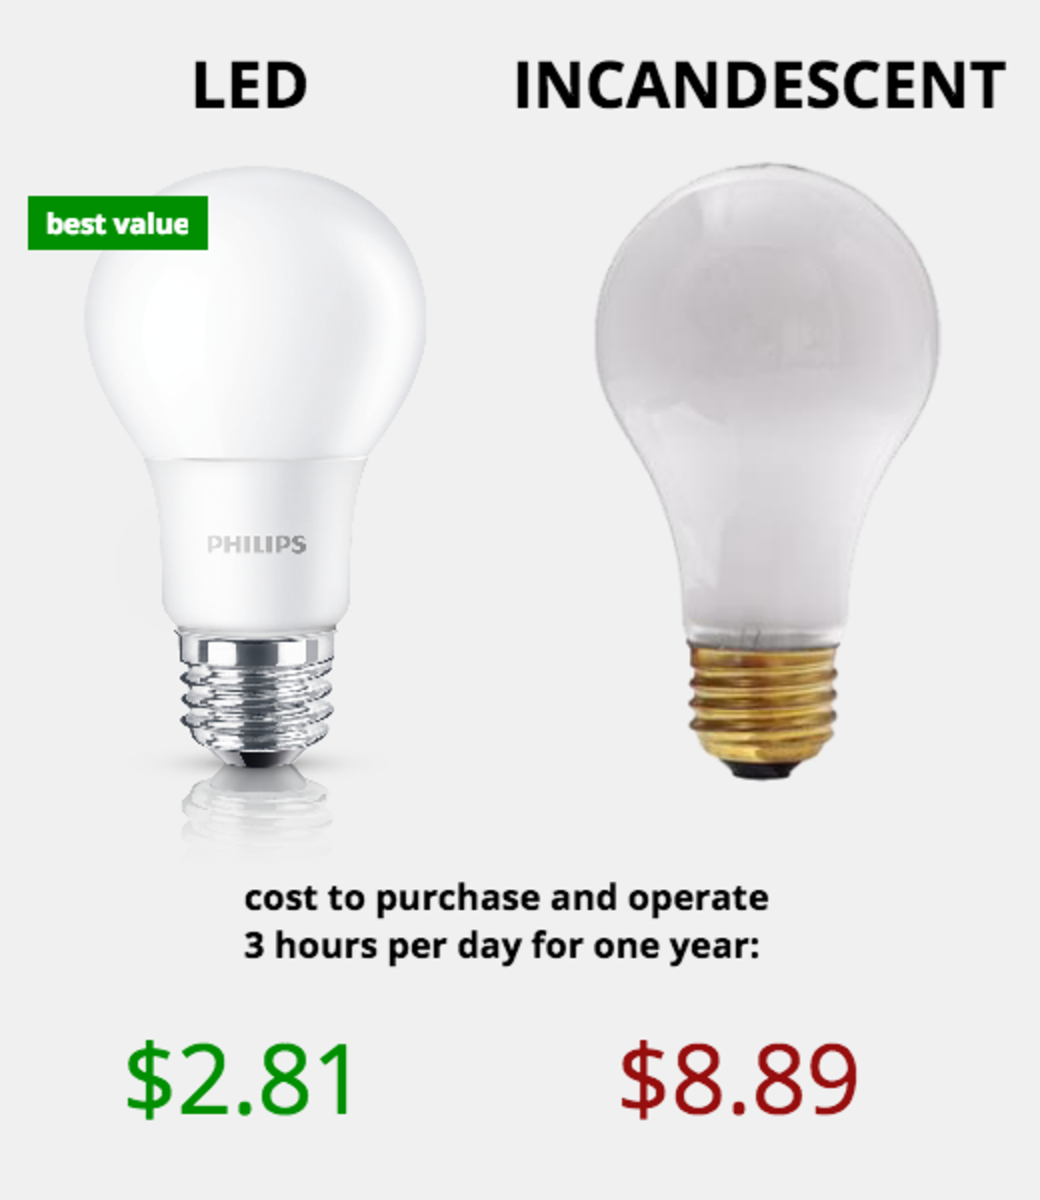 Light Bulb Types: How Much Do LED Lights Save per Year?